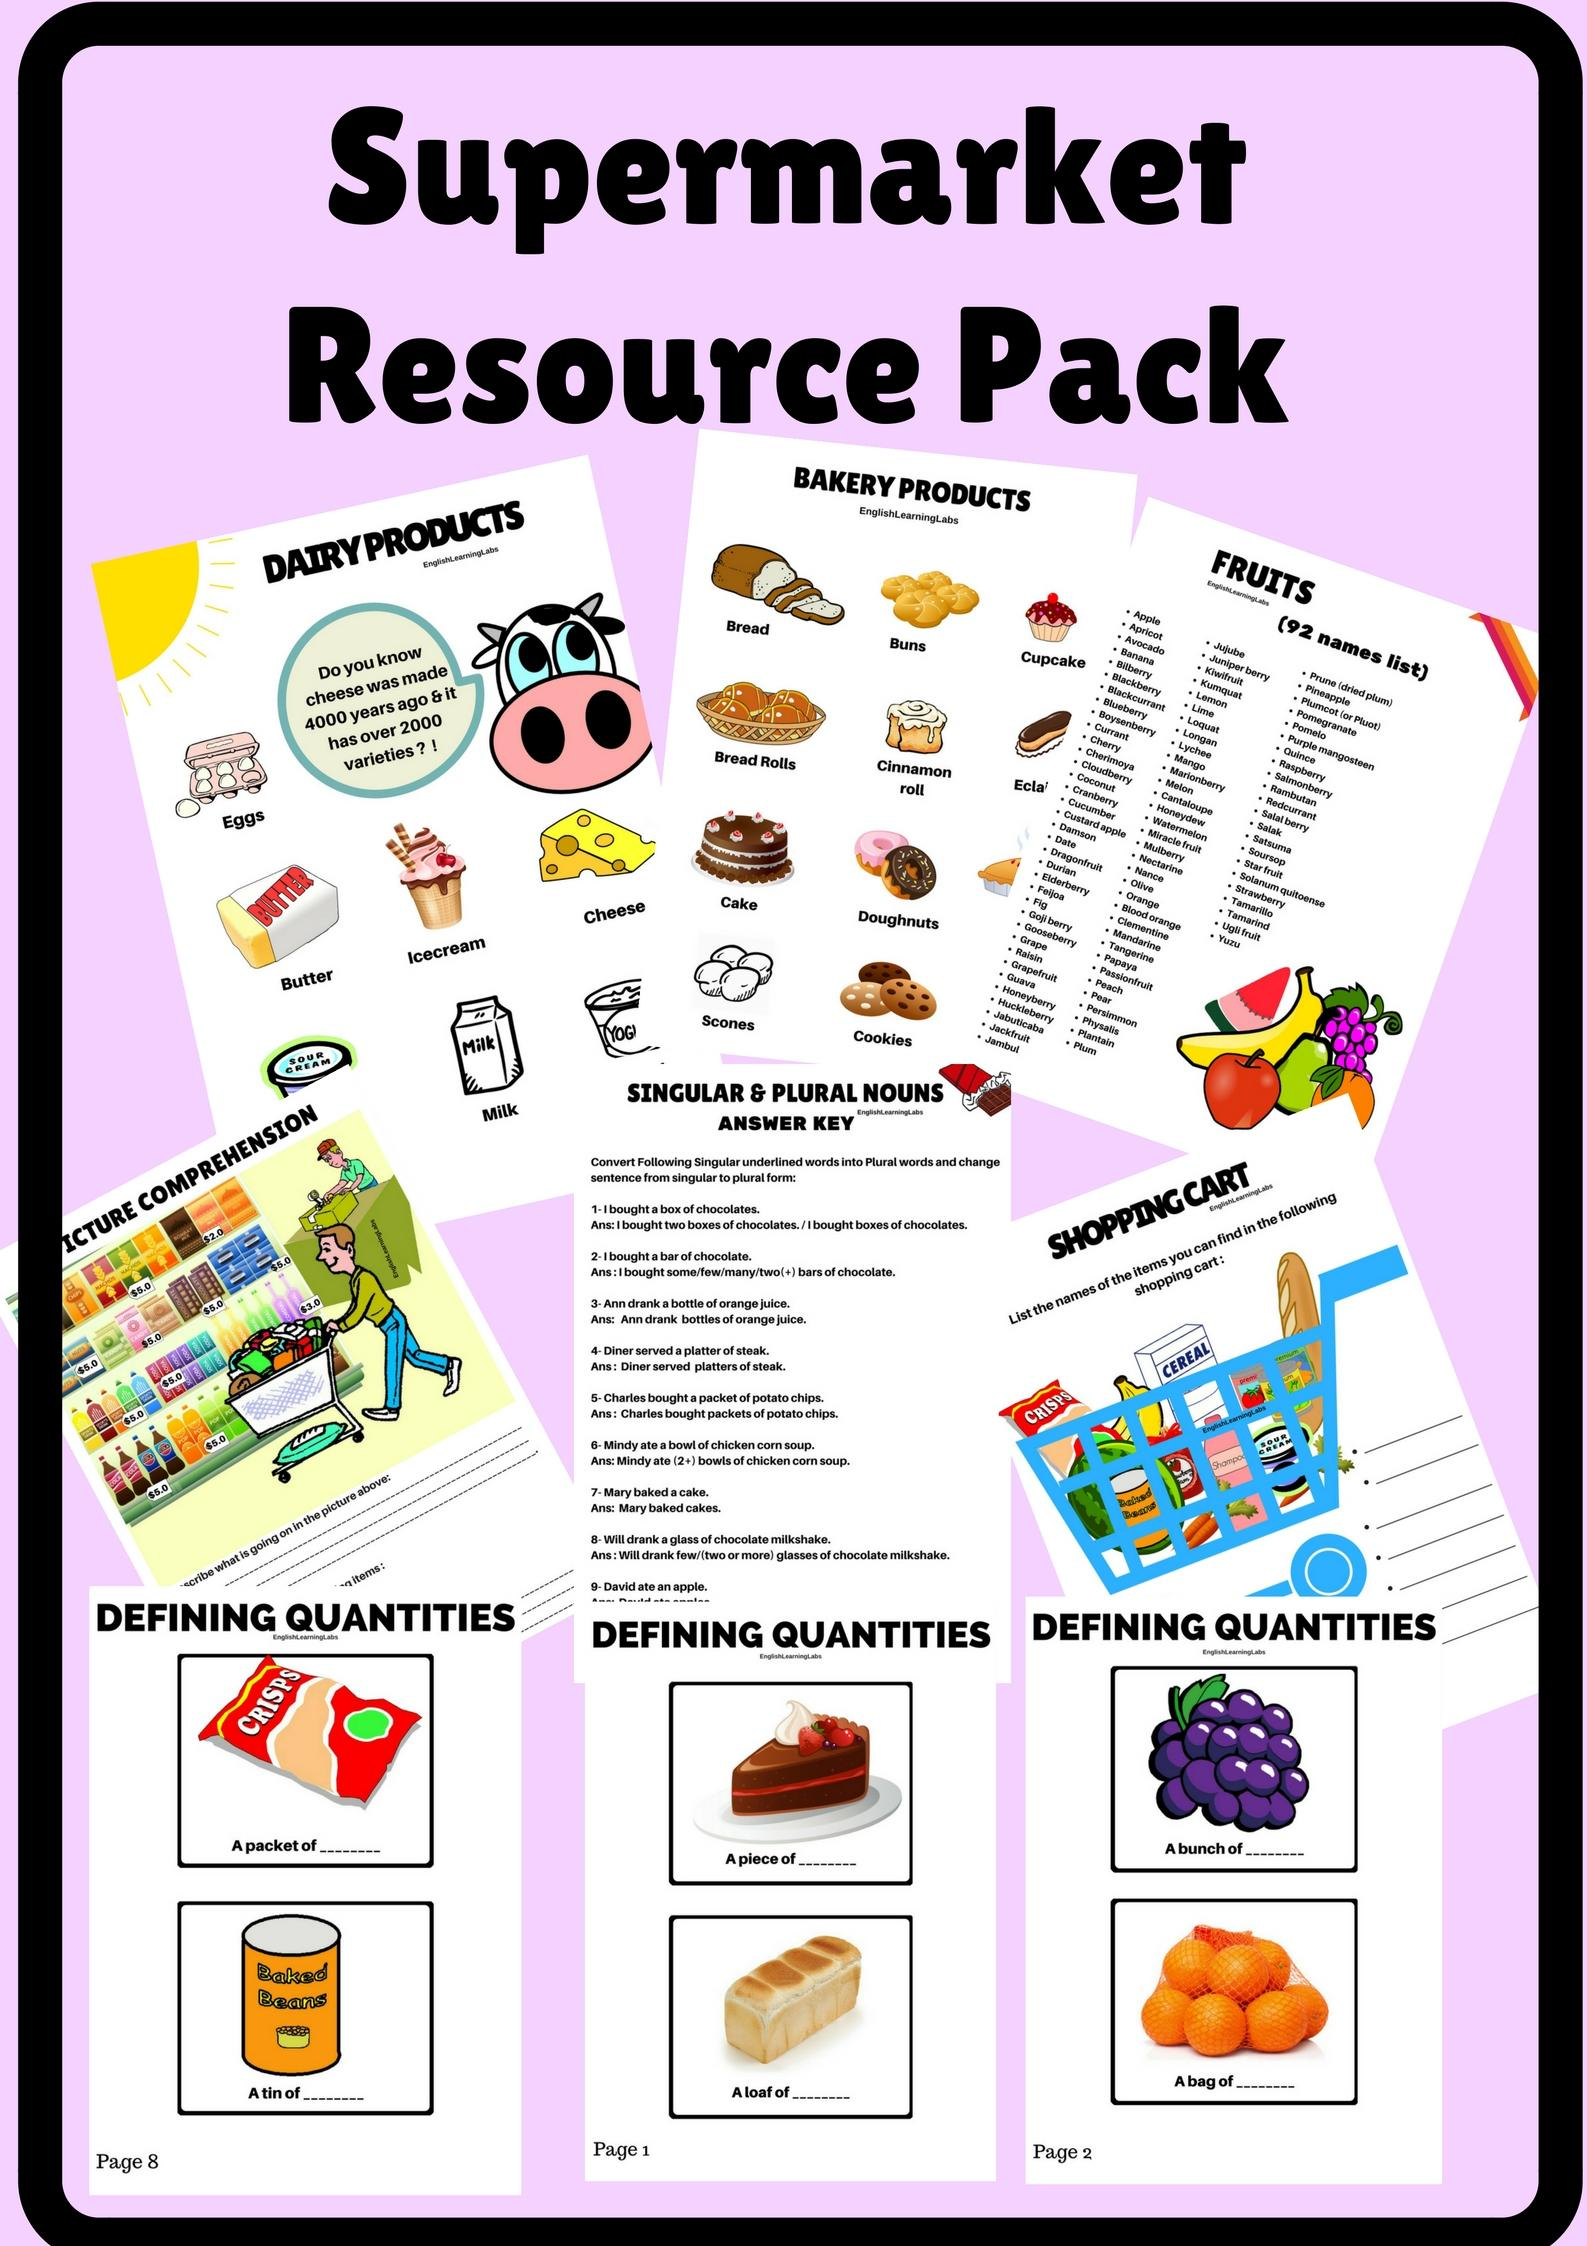 image stock Resource pack worksheets flash. Supermarket clipart flashcard.